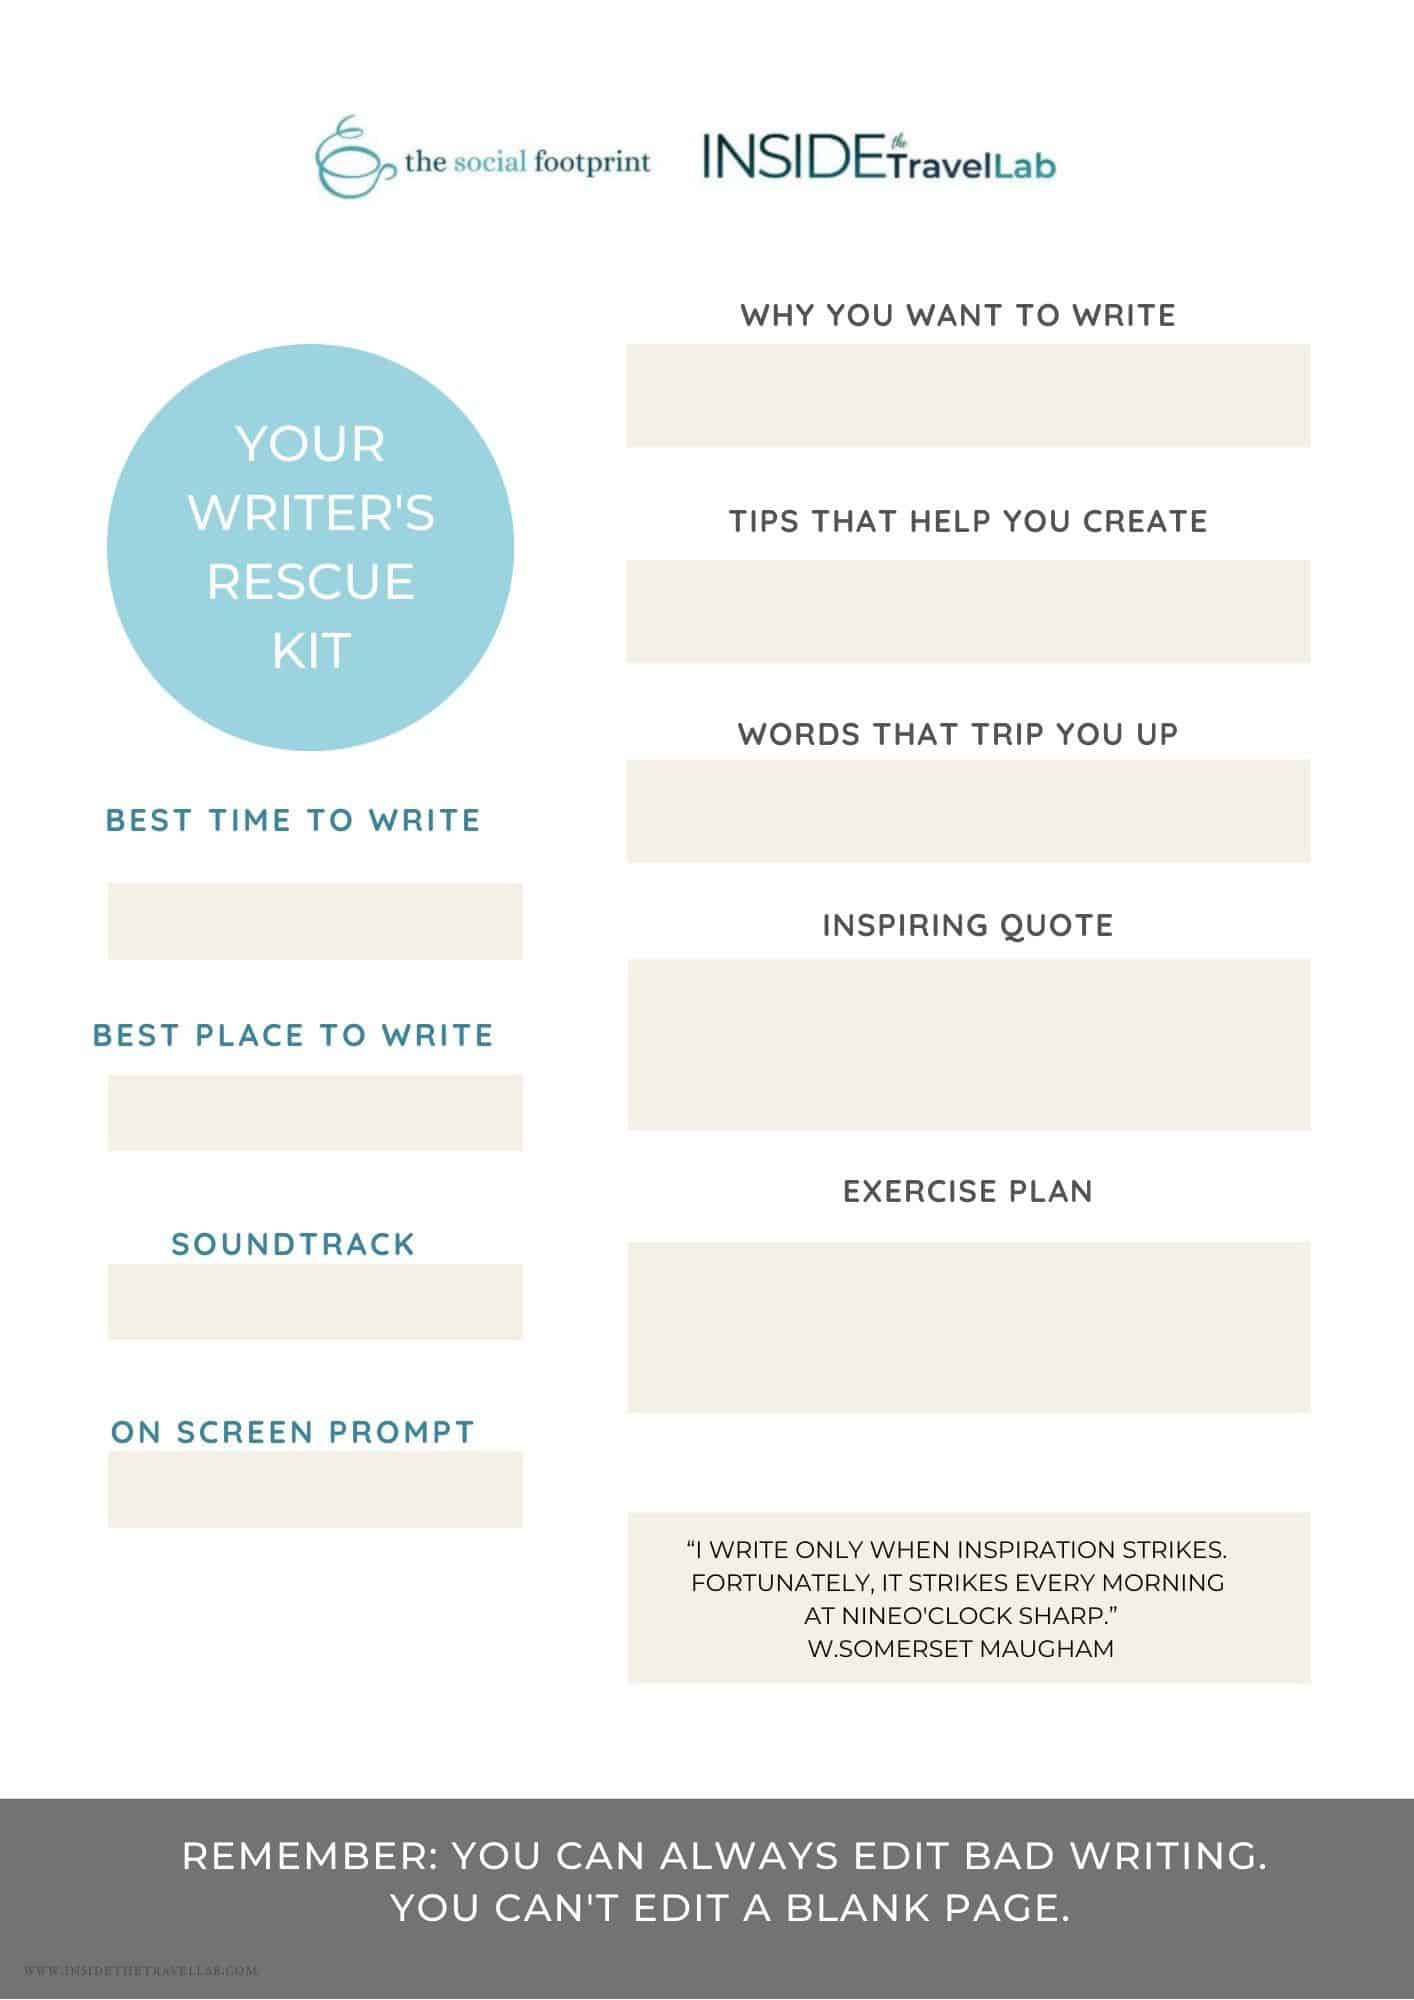 Your Writer's Rescue Kit